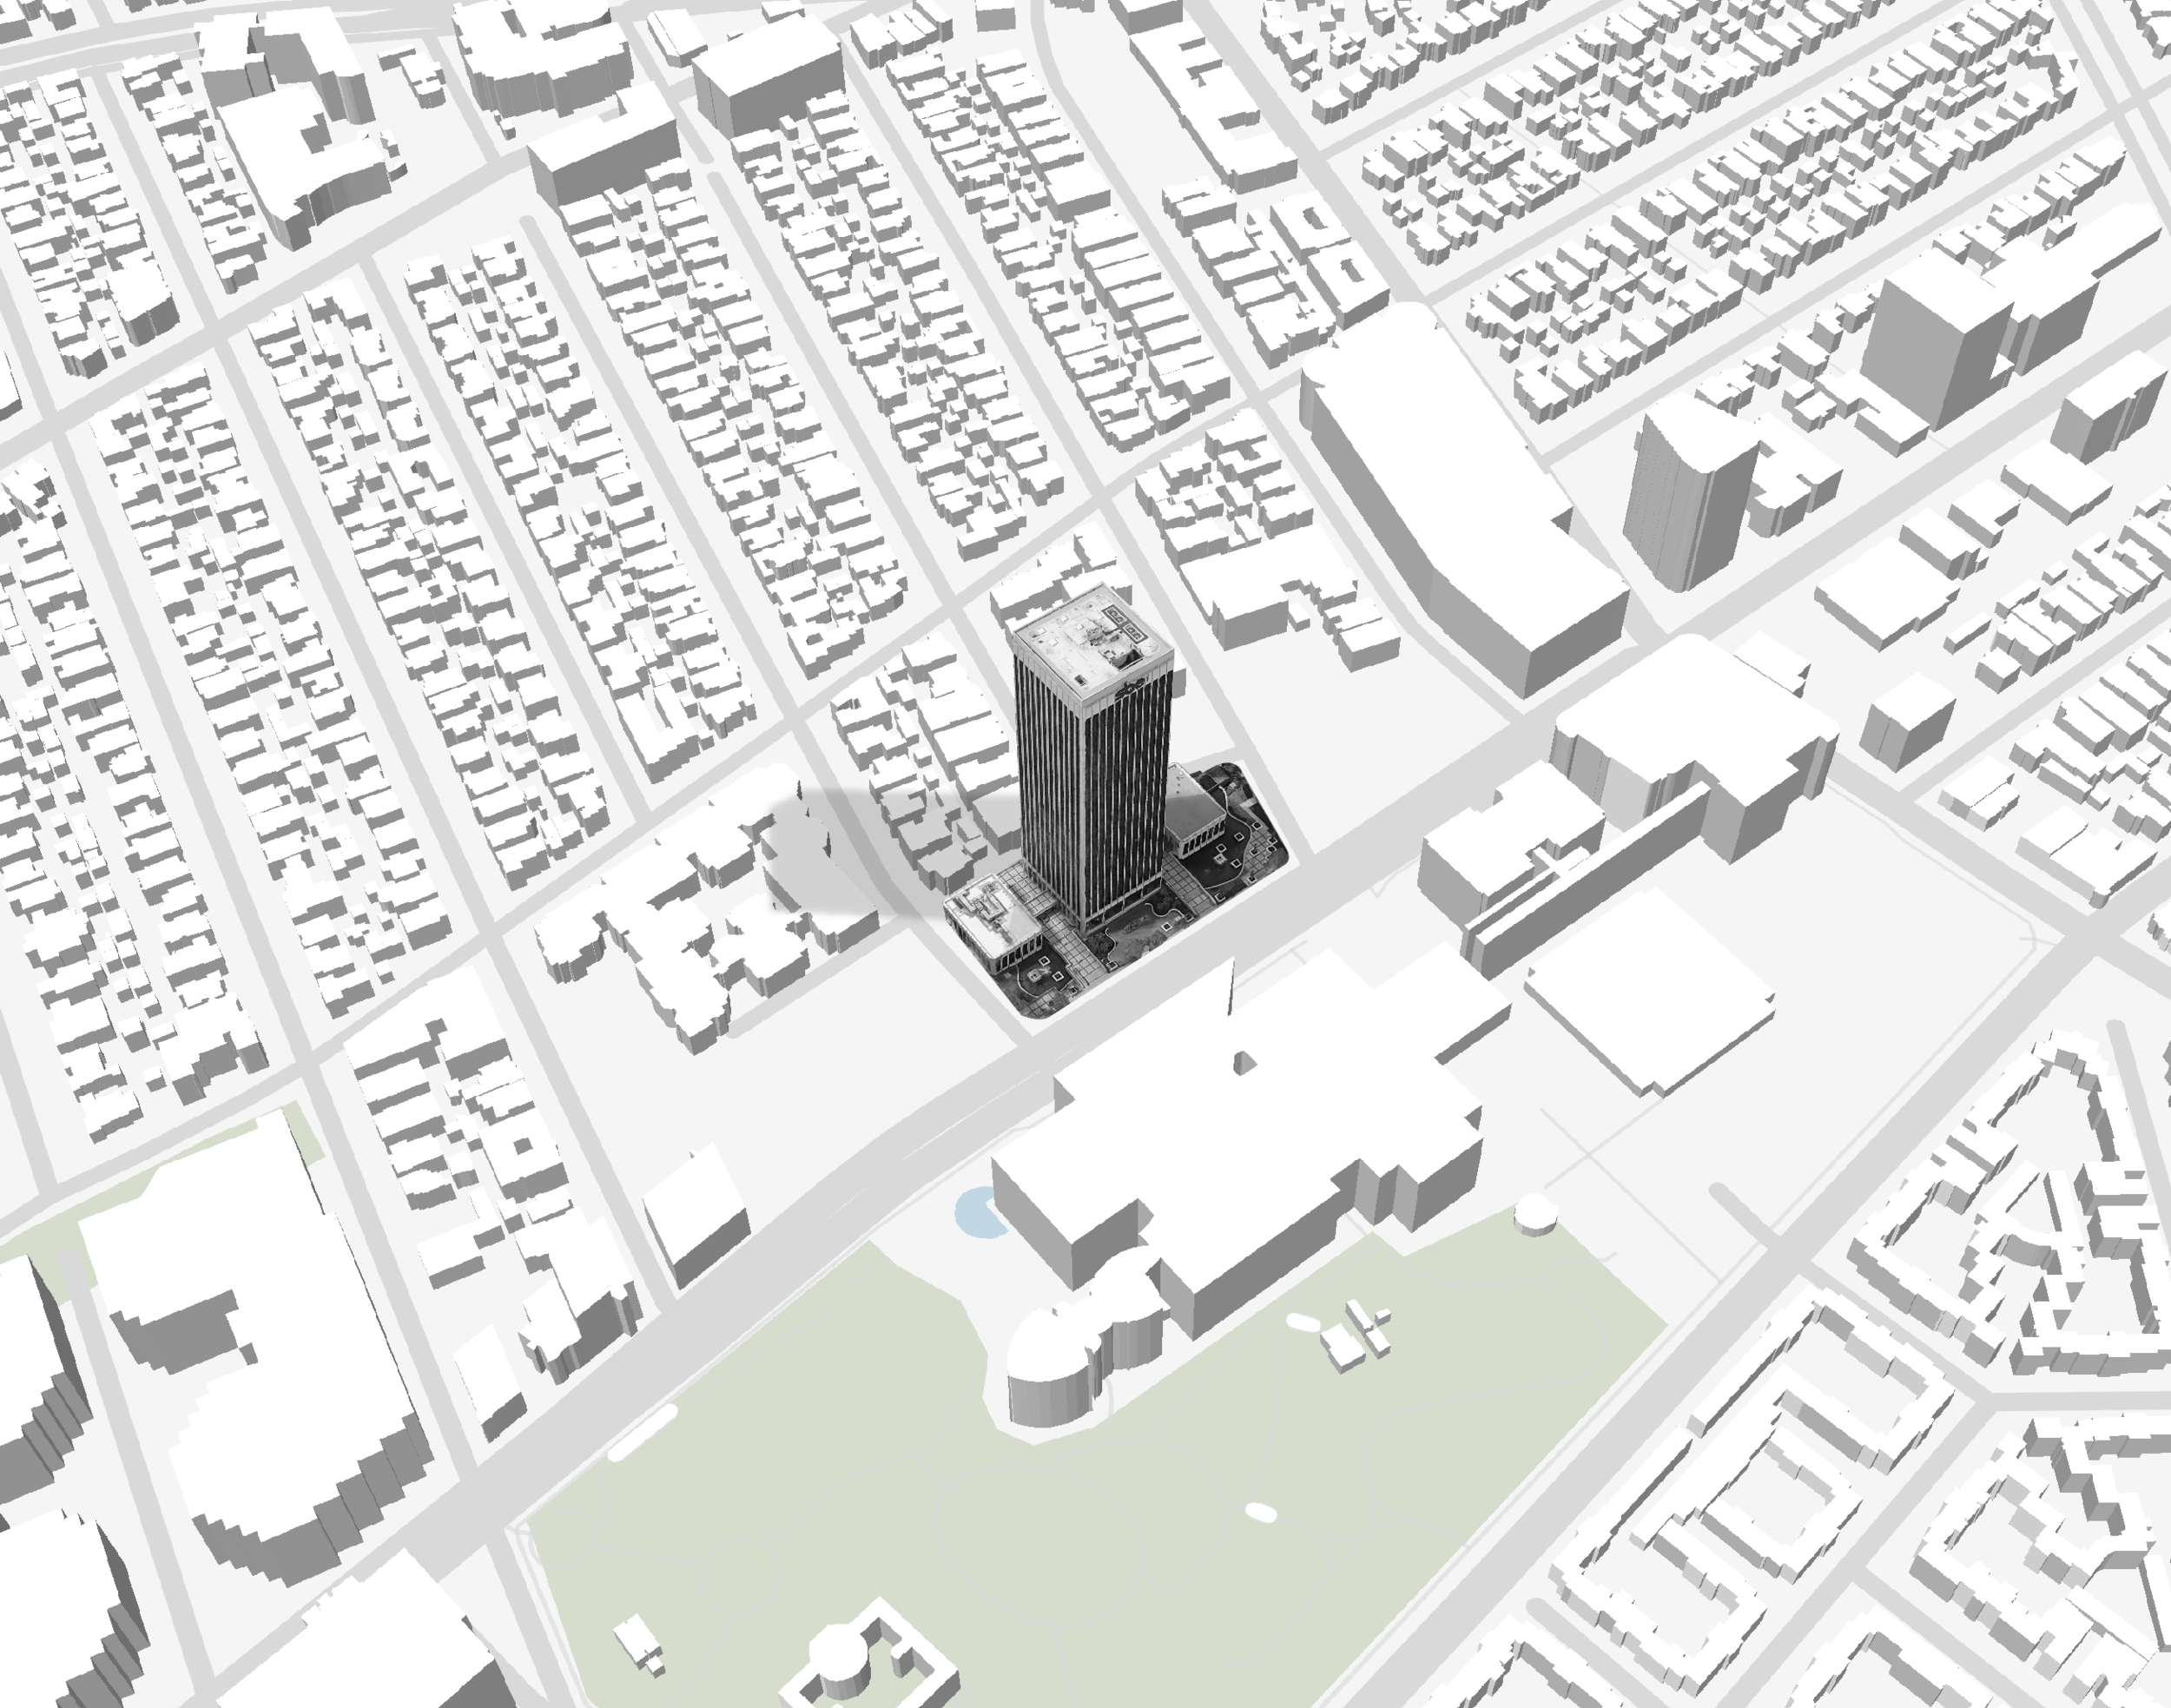 los angeles wilshire miracle mile 3d site plan map.png